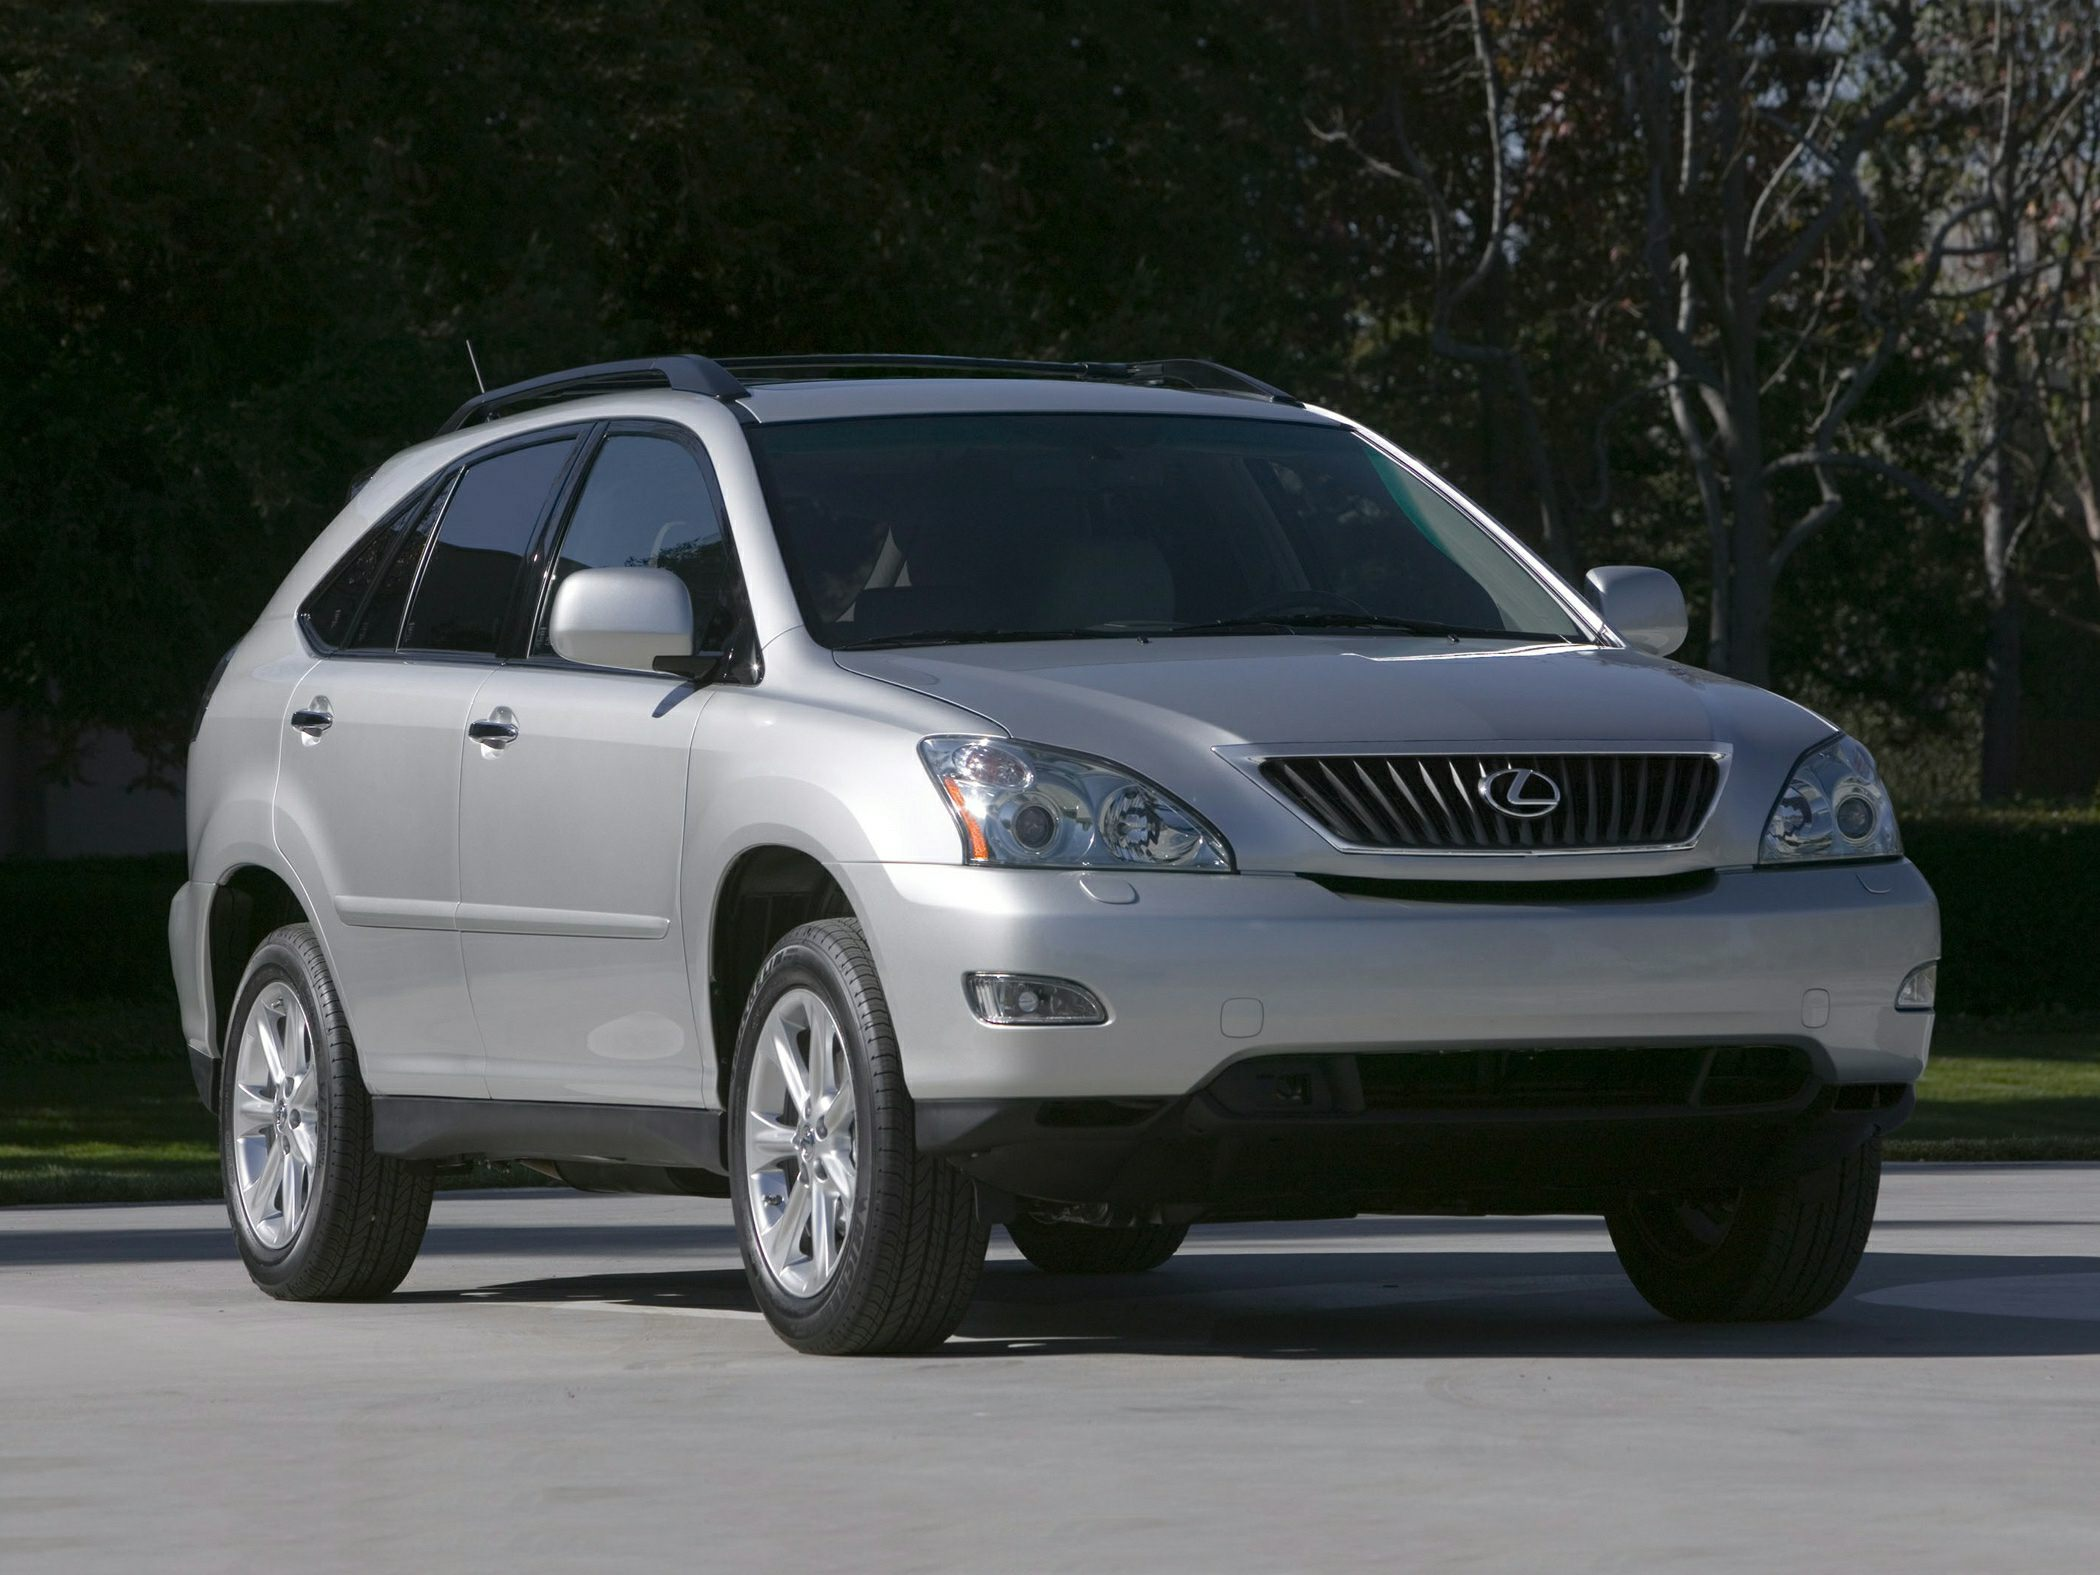 2008 acura rdx vs other vehicles overview